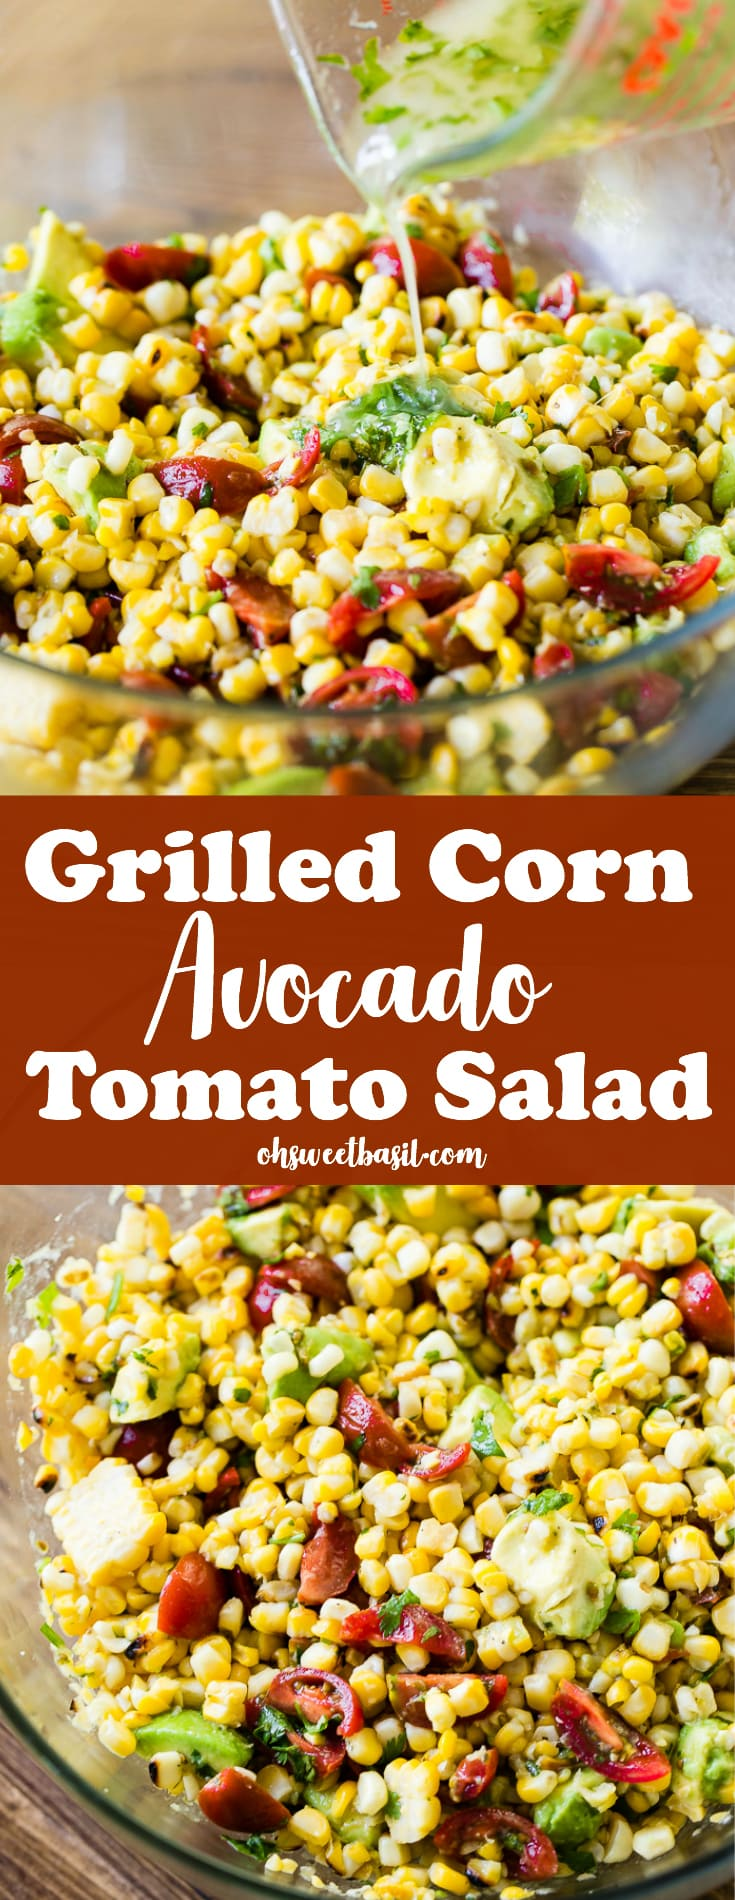 A glass bowl filled with a big grilled corn avocado tomato salad with a cilantro dressing being poured over the top